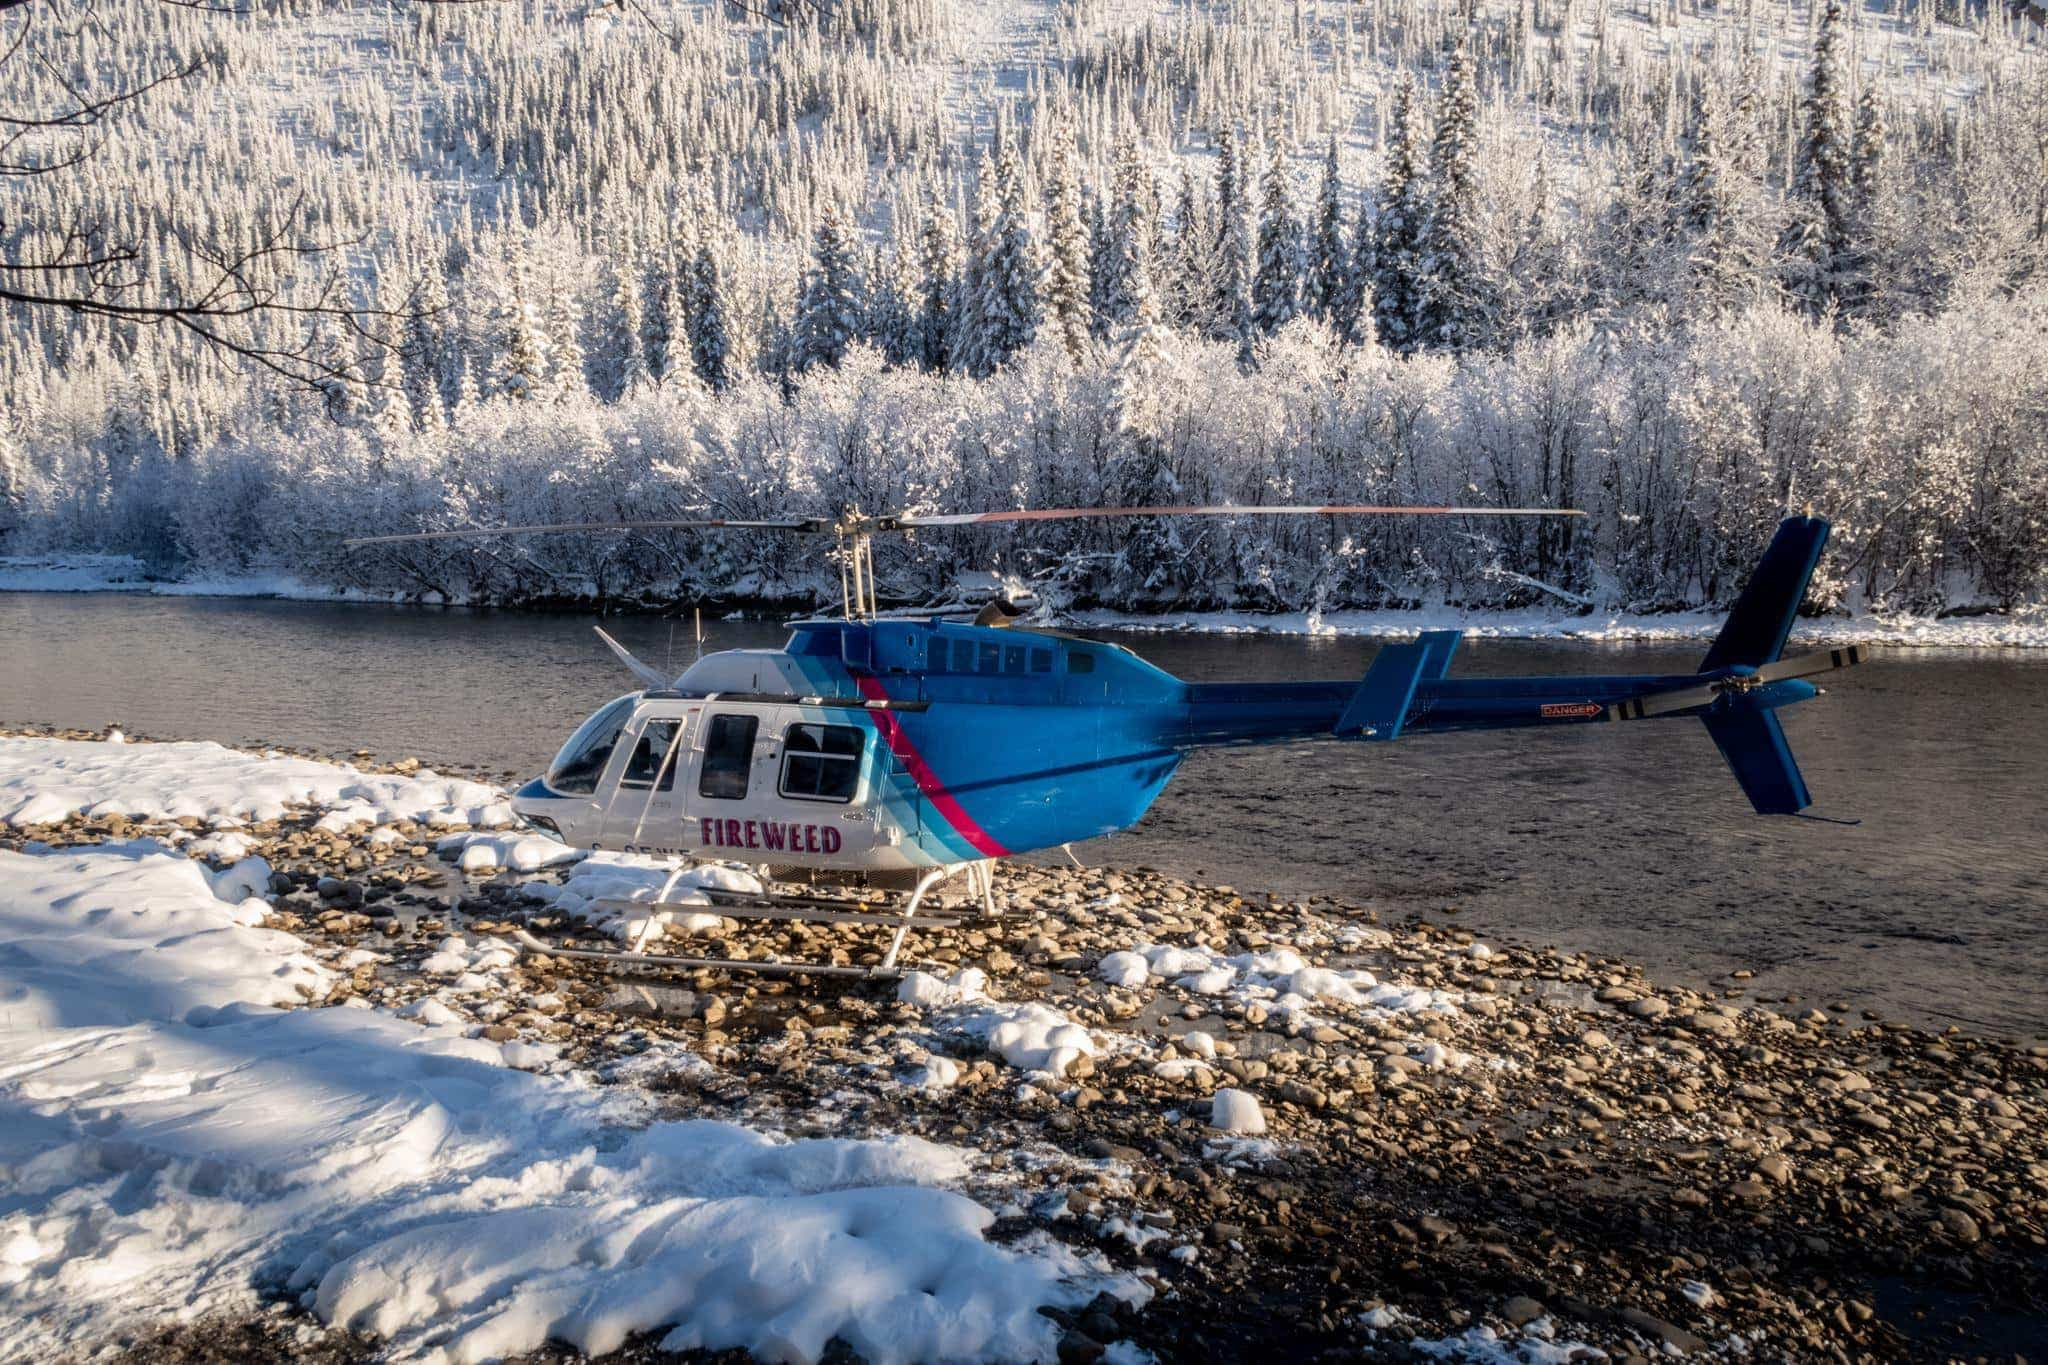 A Helicopter Rests On The Shingles Of Fishing Branch River   Captured During The Natureslens Ice Grizzlies Of The Yukon Photography Holiday